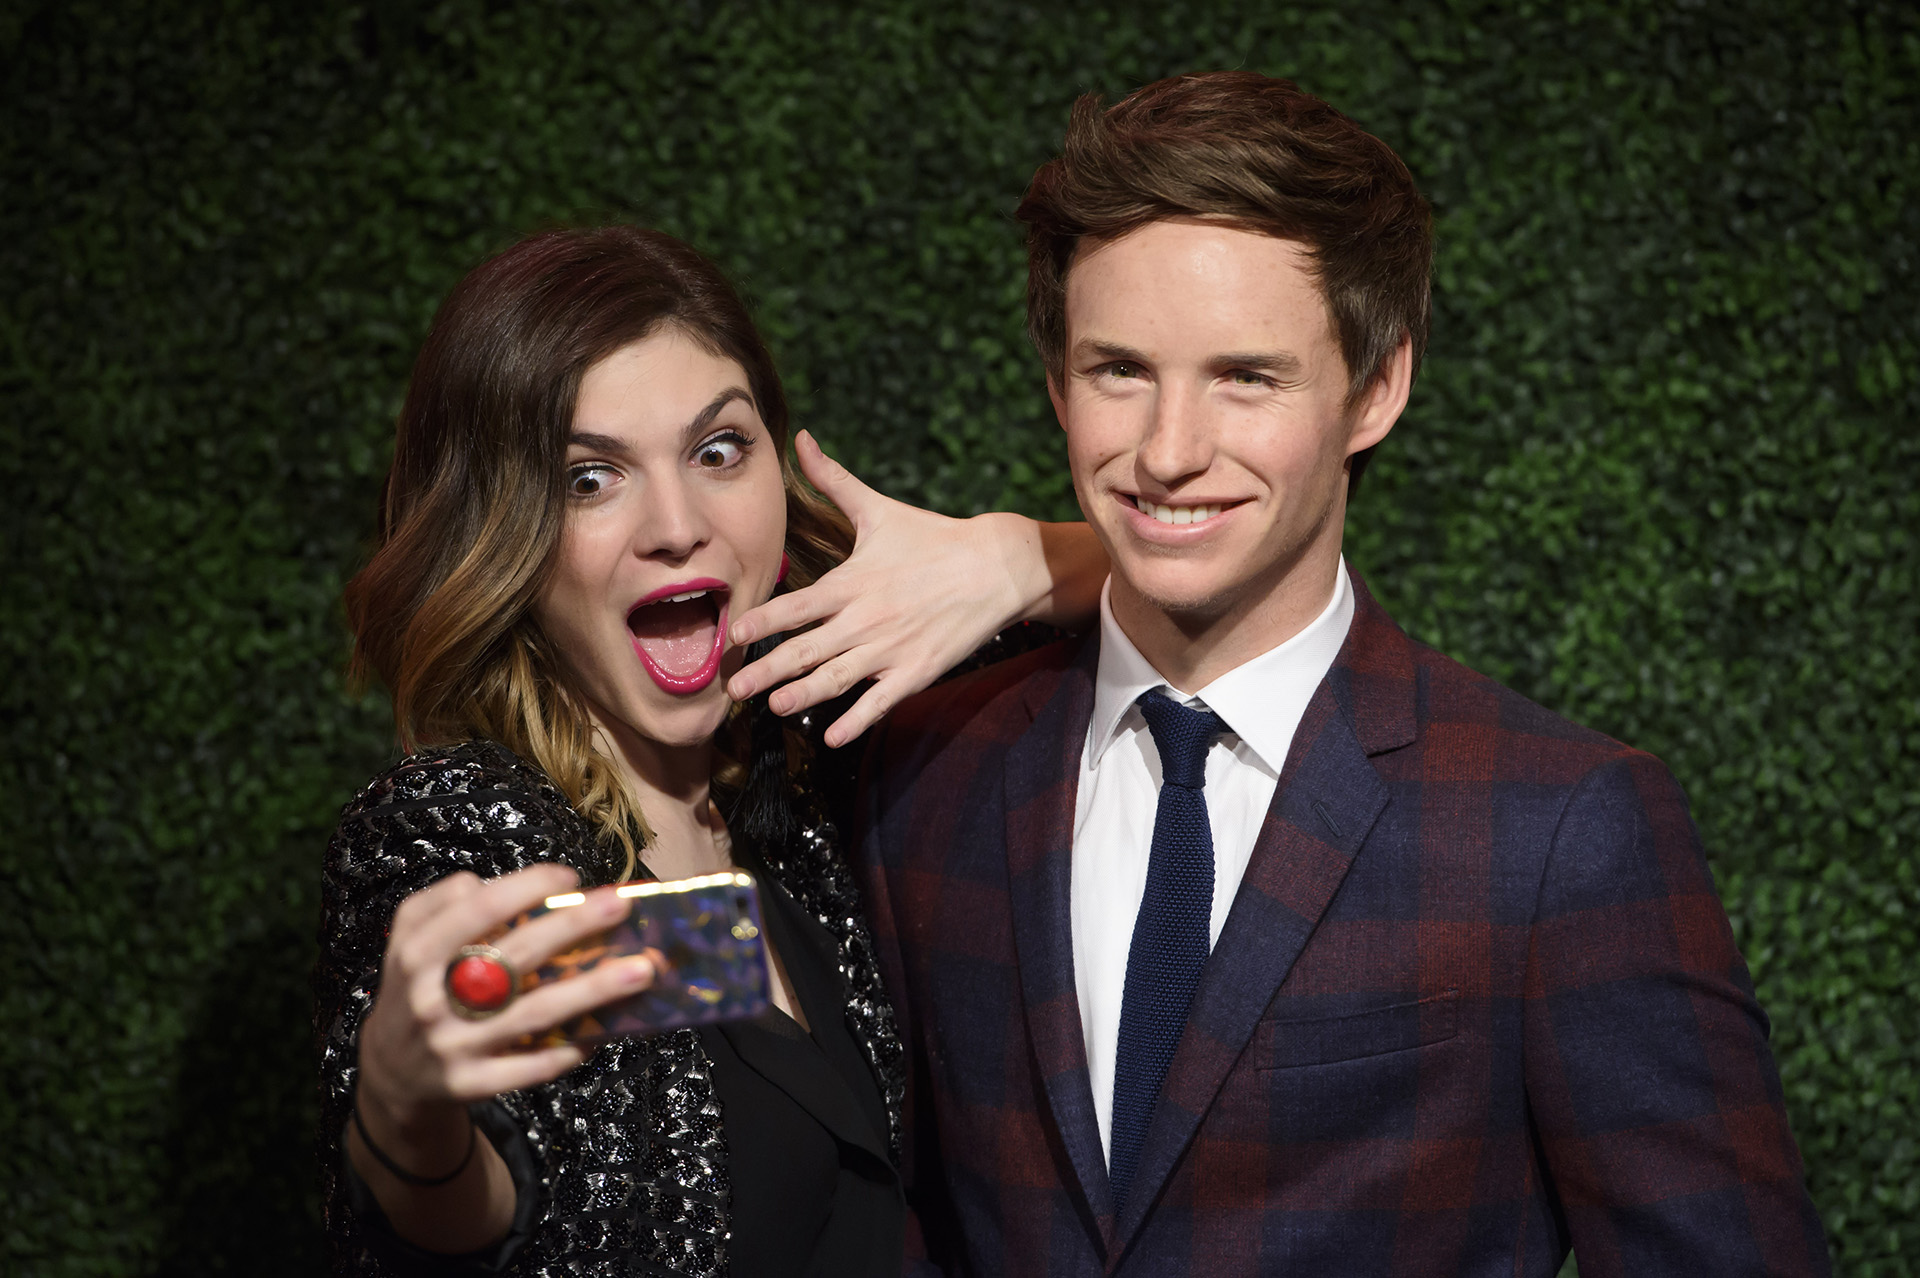 Fan taking a selfie with Eddie Redmayne at Madame Tussauds London